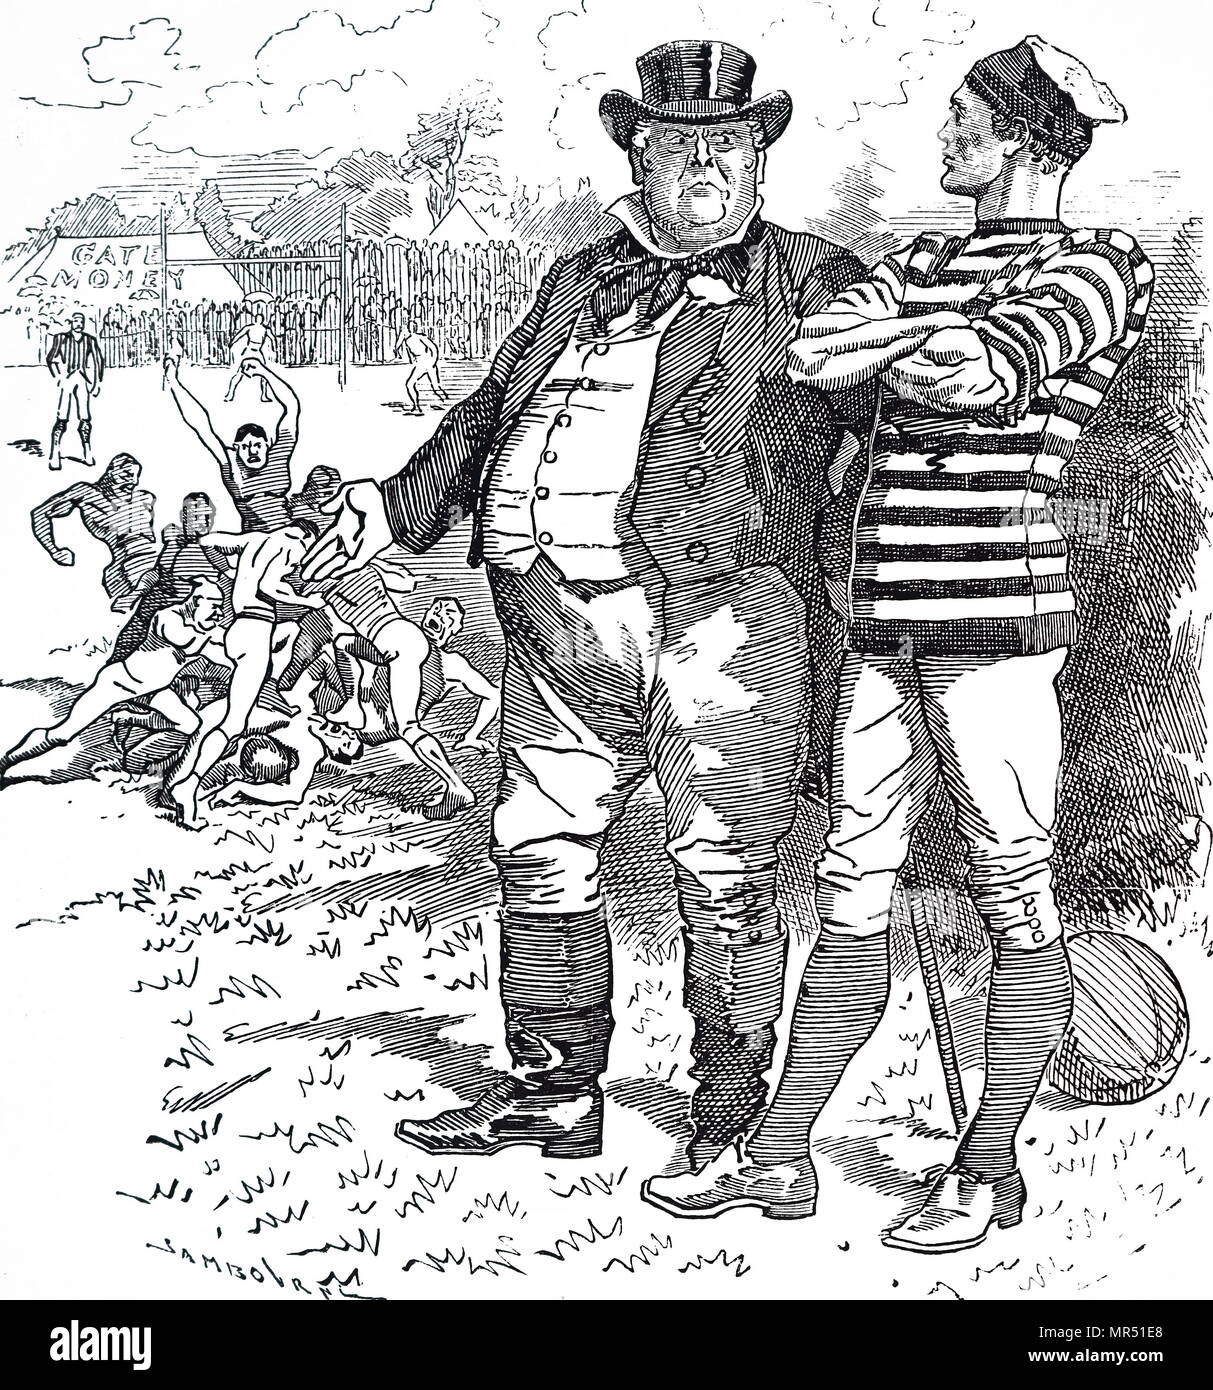 Cartoon depicting John Bull admonishing the Rugby Football Association for the roughness of their game. John Bull is a national personification of the United Kingdom in general and England in particular, especially in political cartoons and similar graphic works. Dated 19th century - Stock Image